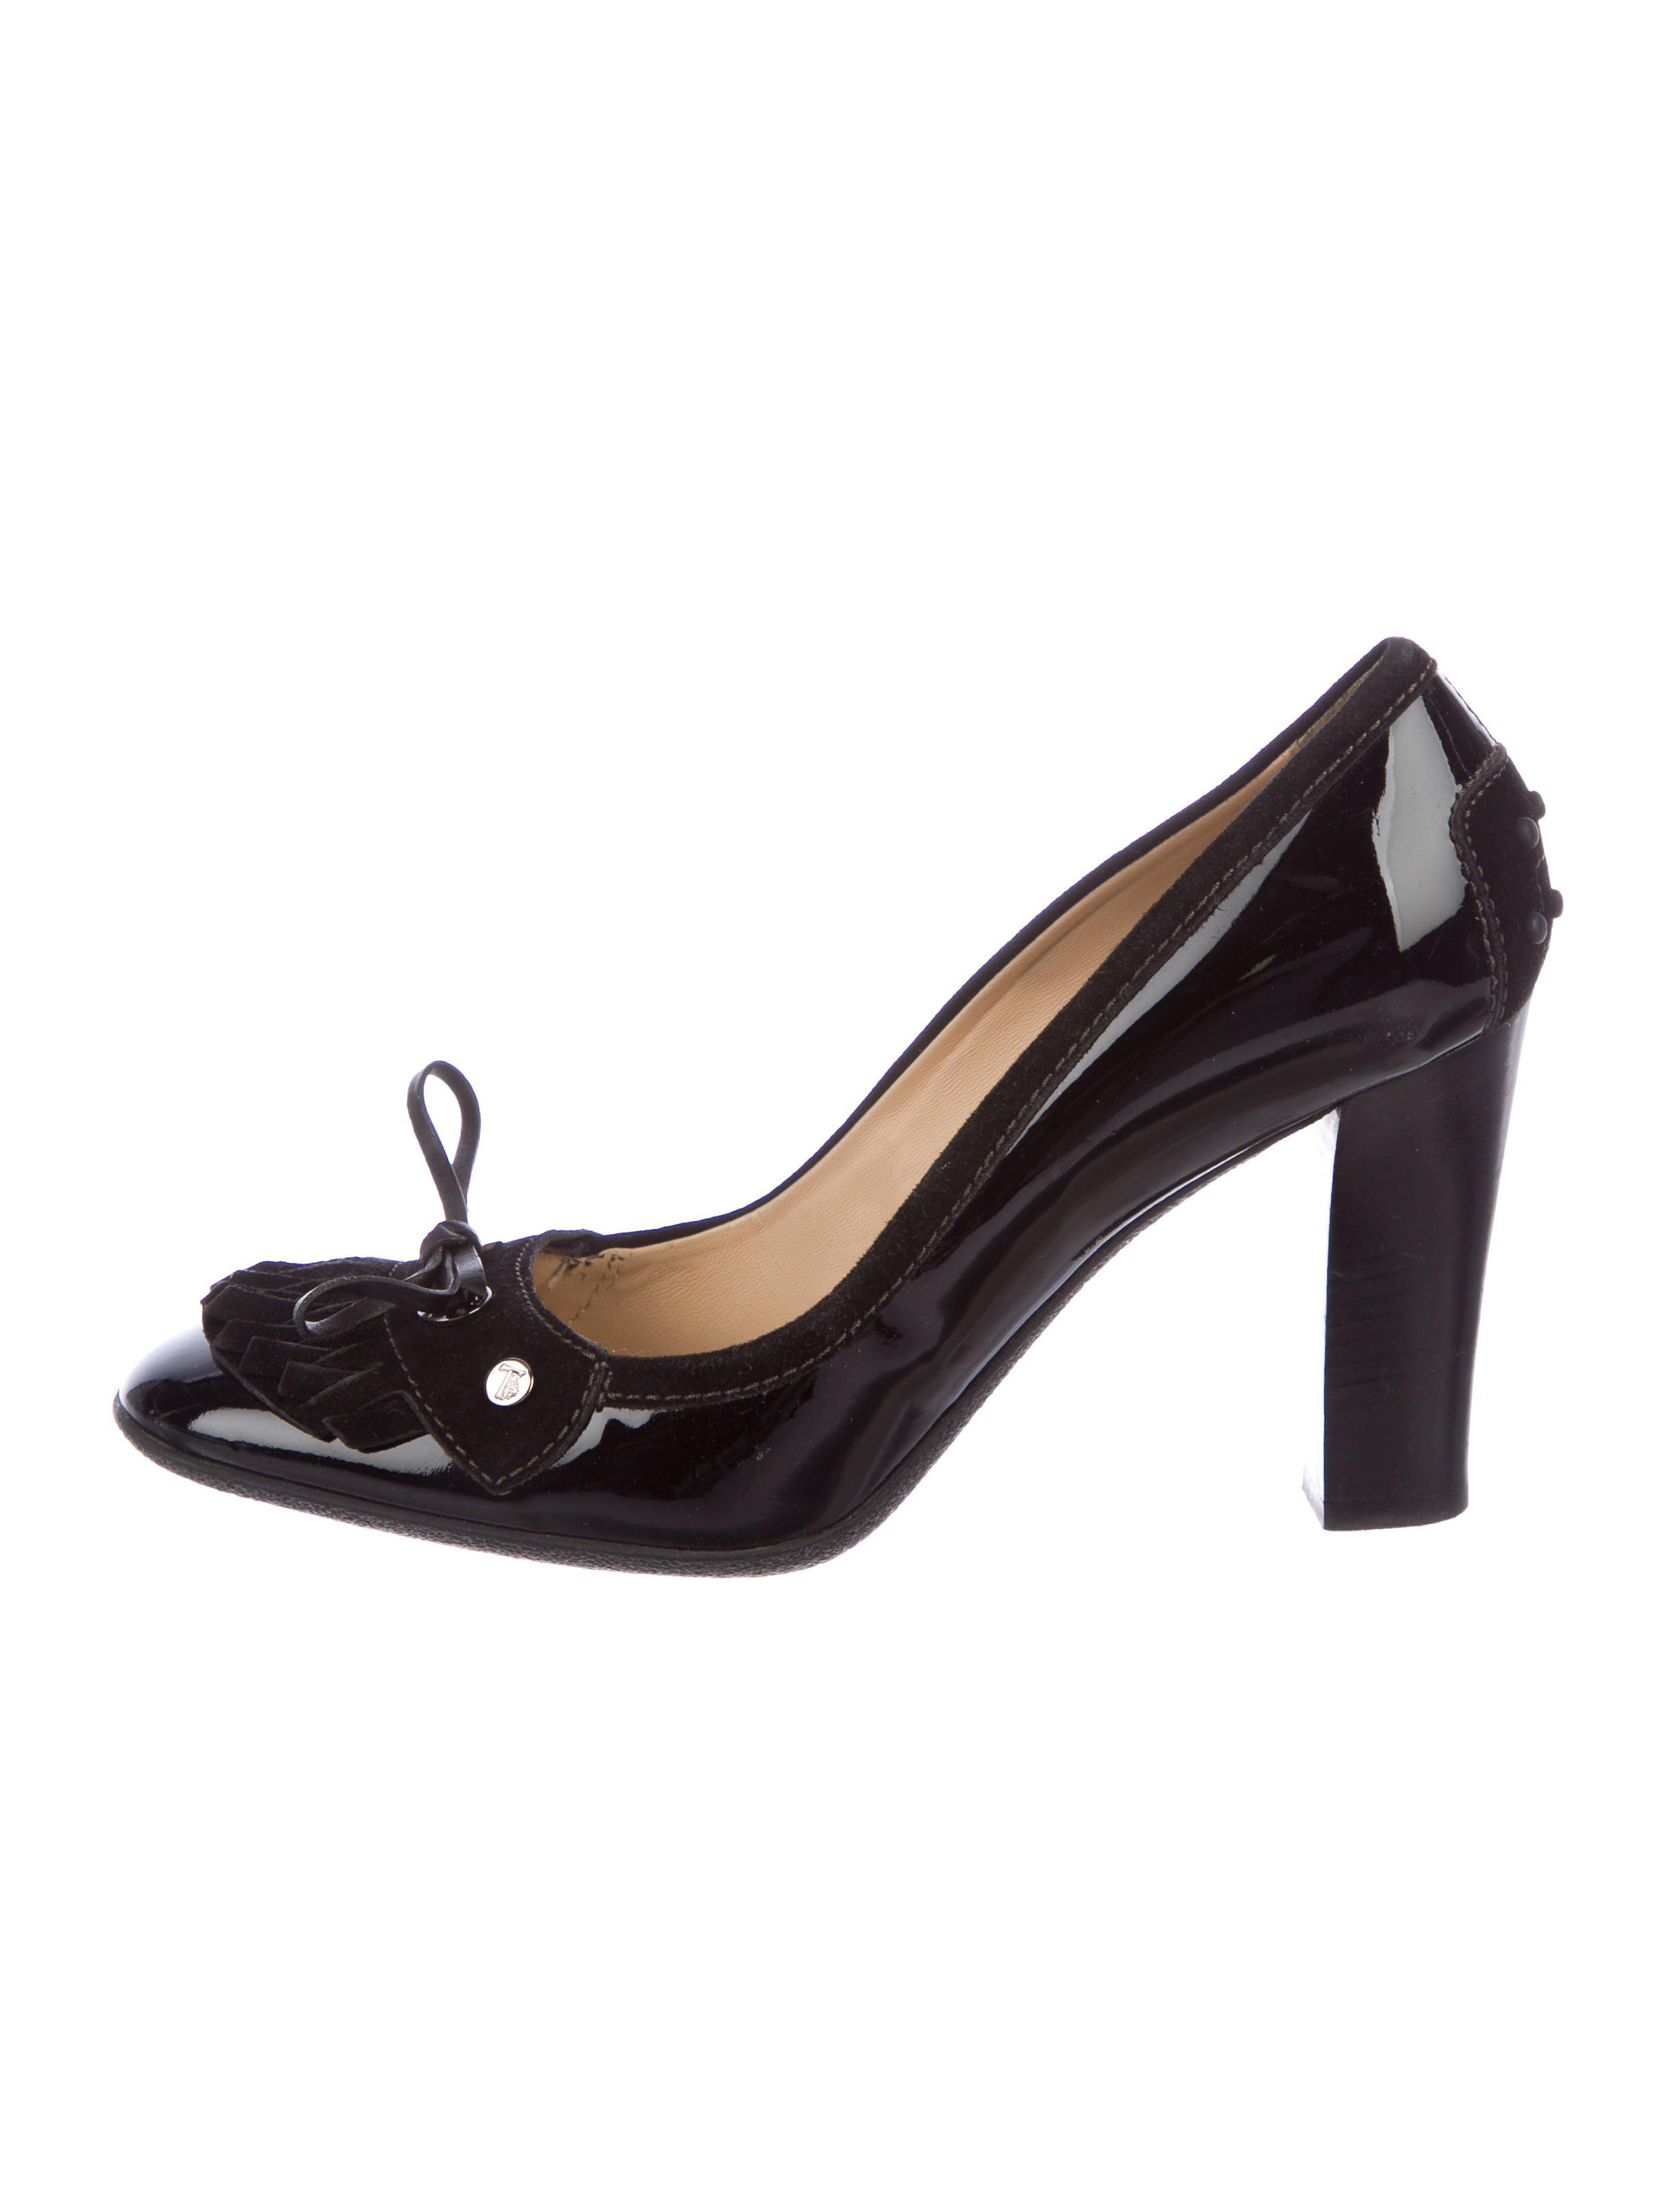 Tod's Embellished Patent Leather Pumps shopping online original cheap sale the cheapest discount low price best prices cheap online OqEHJh1uF